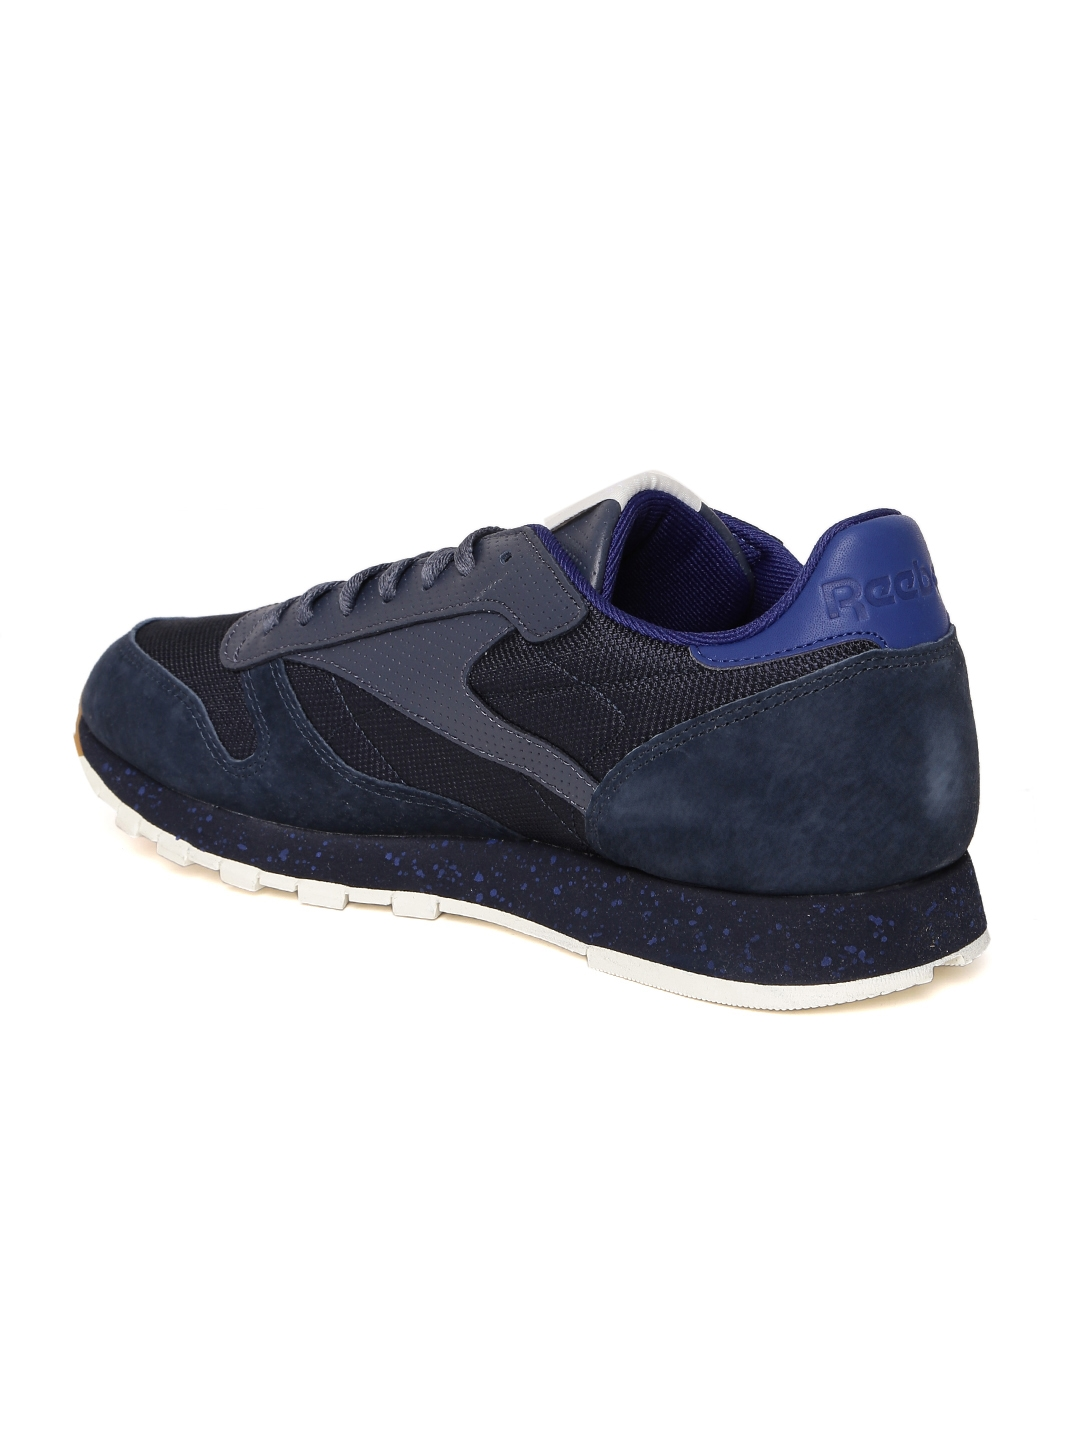 finest selection 24efe a692c 11509172930050-Reebok-Classic-Men-Casual-Shoes-7911509172929894-2.jpg